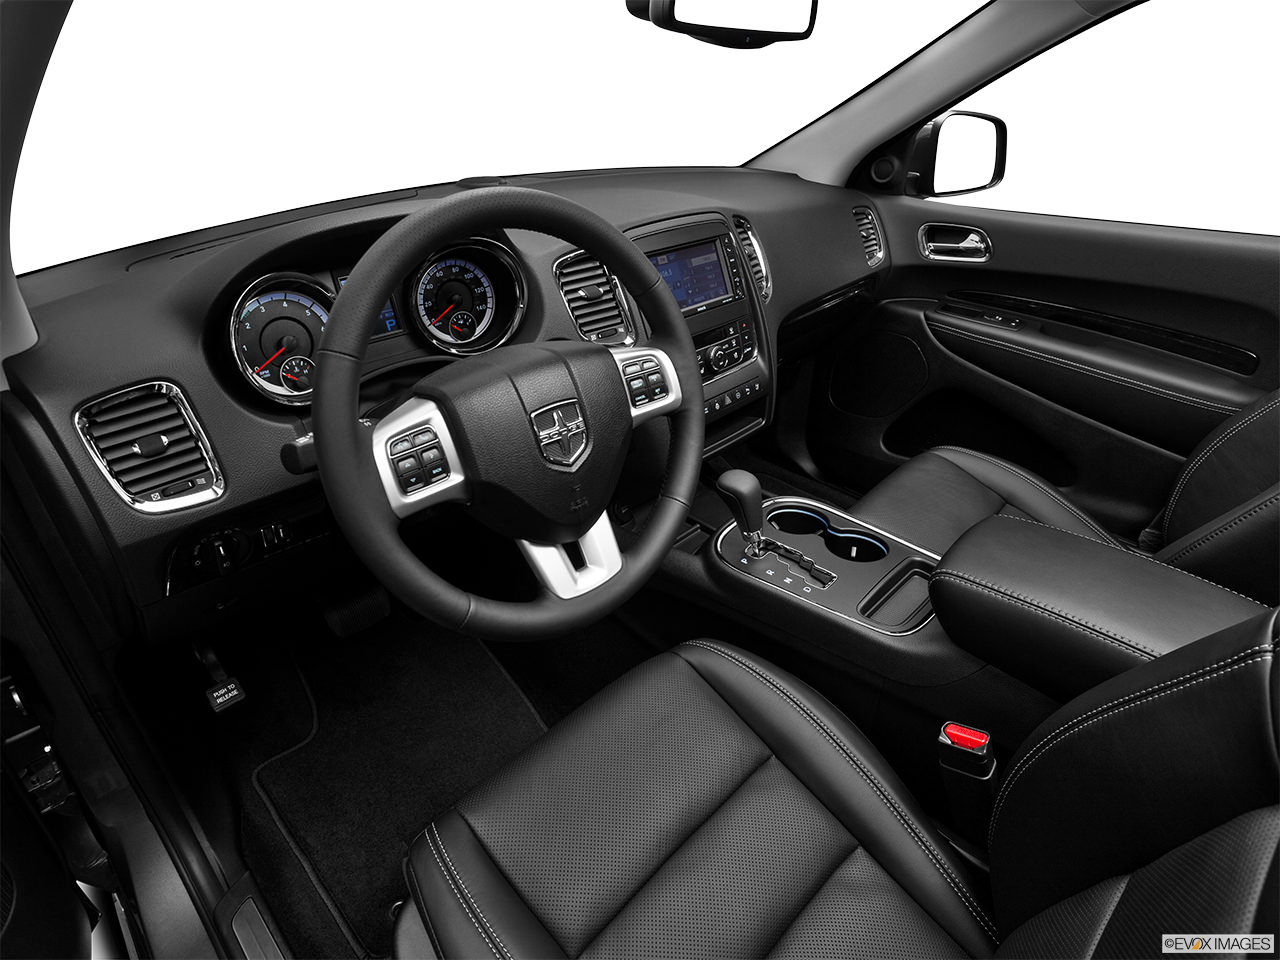 Dodge Durango 2012 Interior